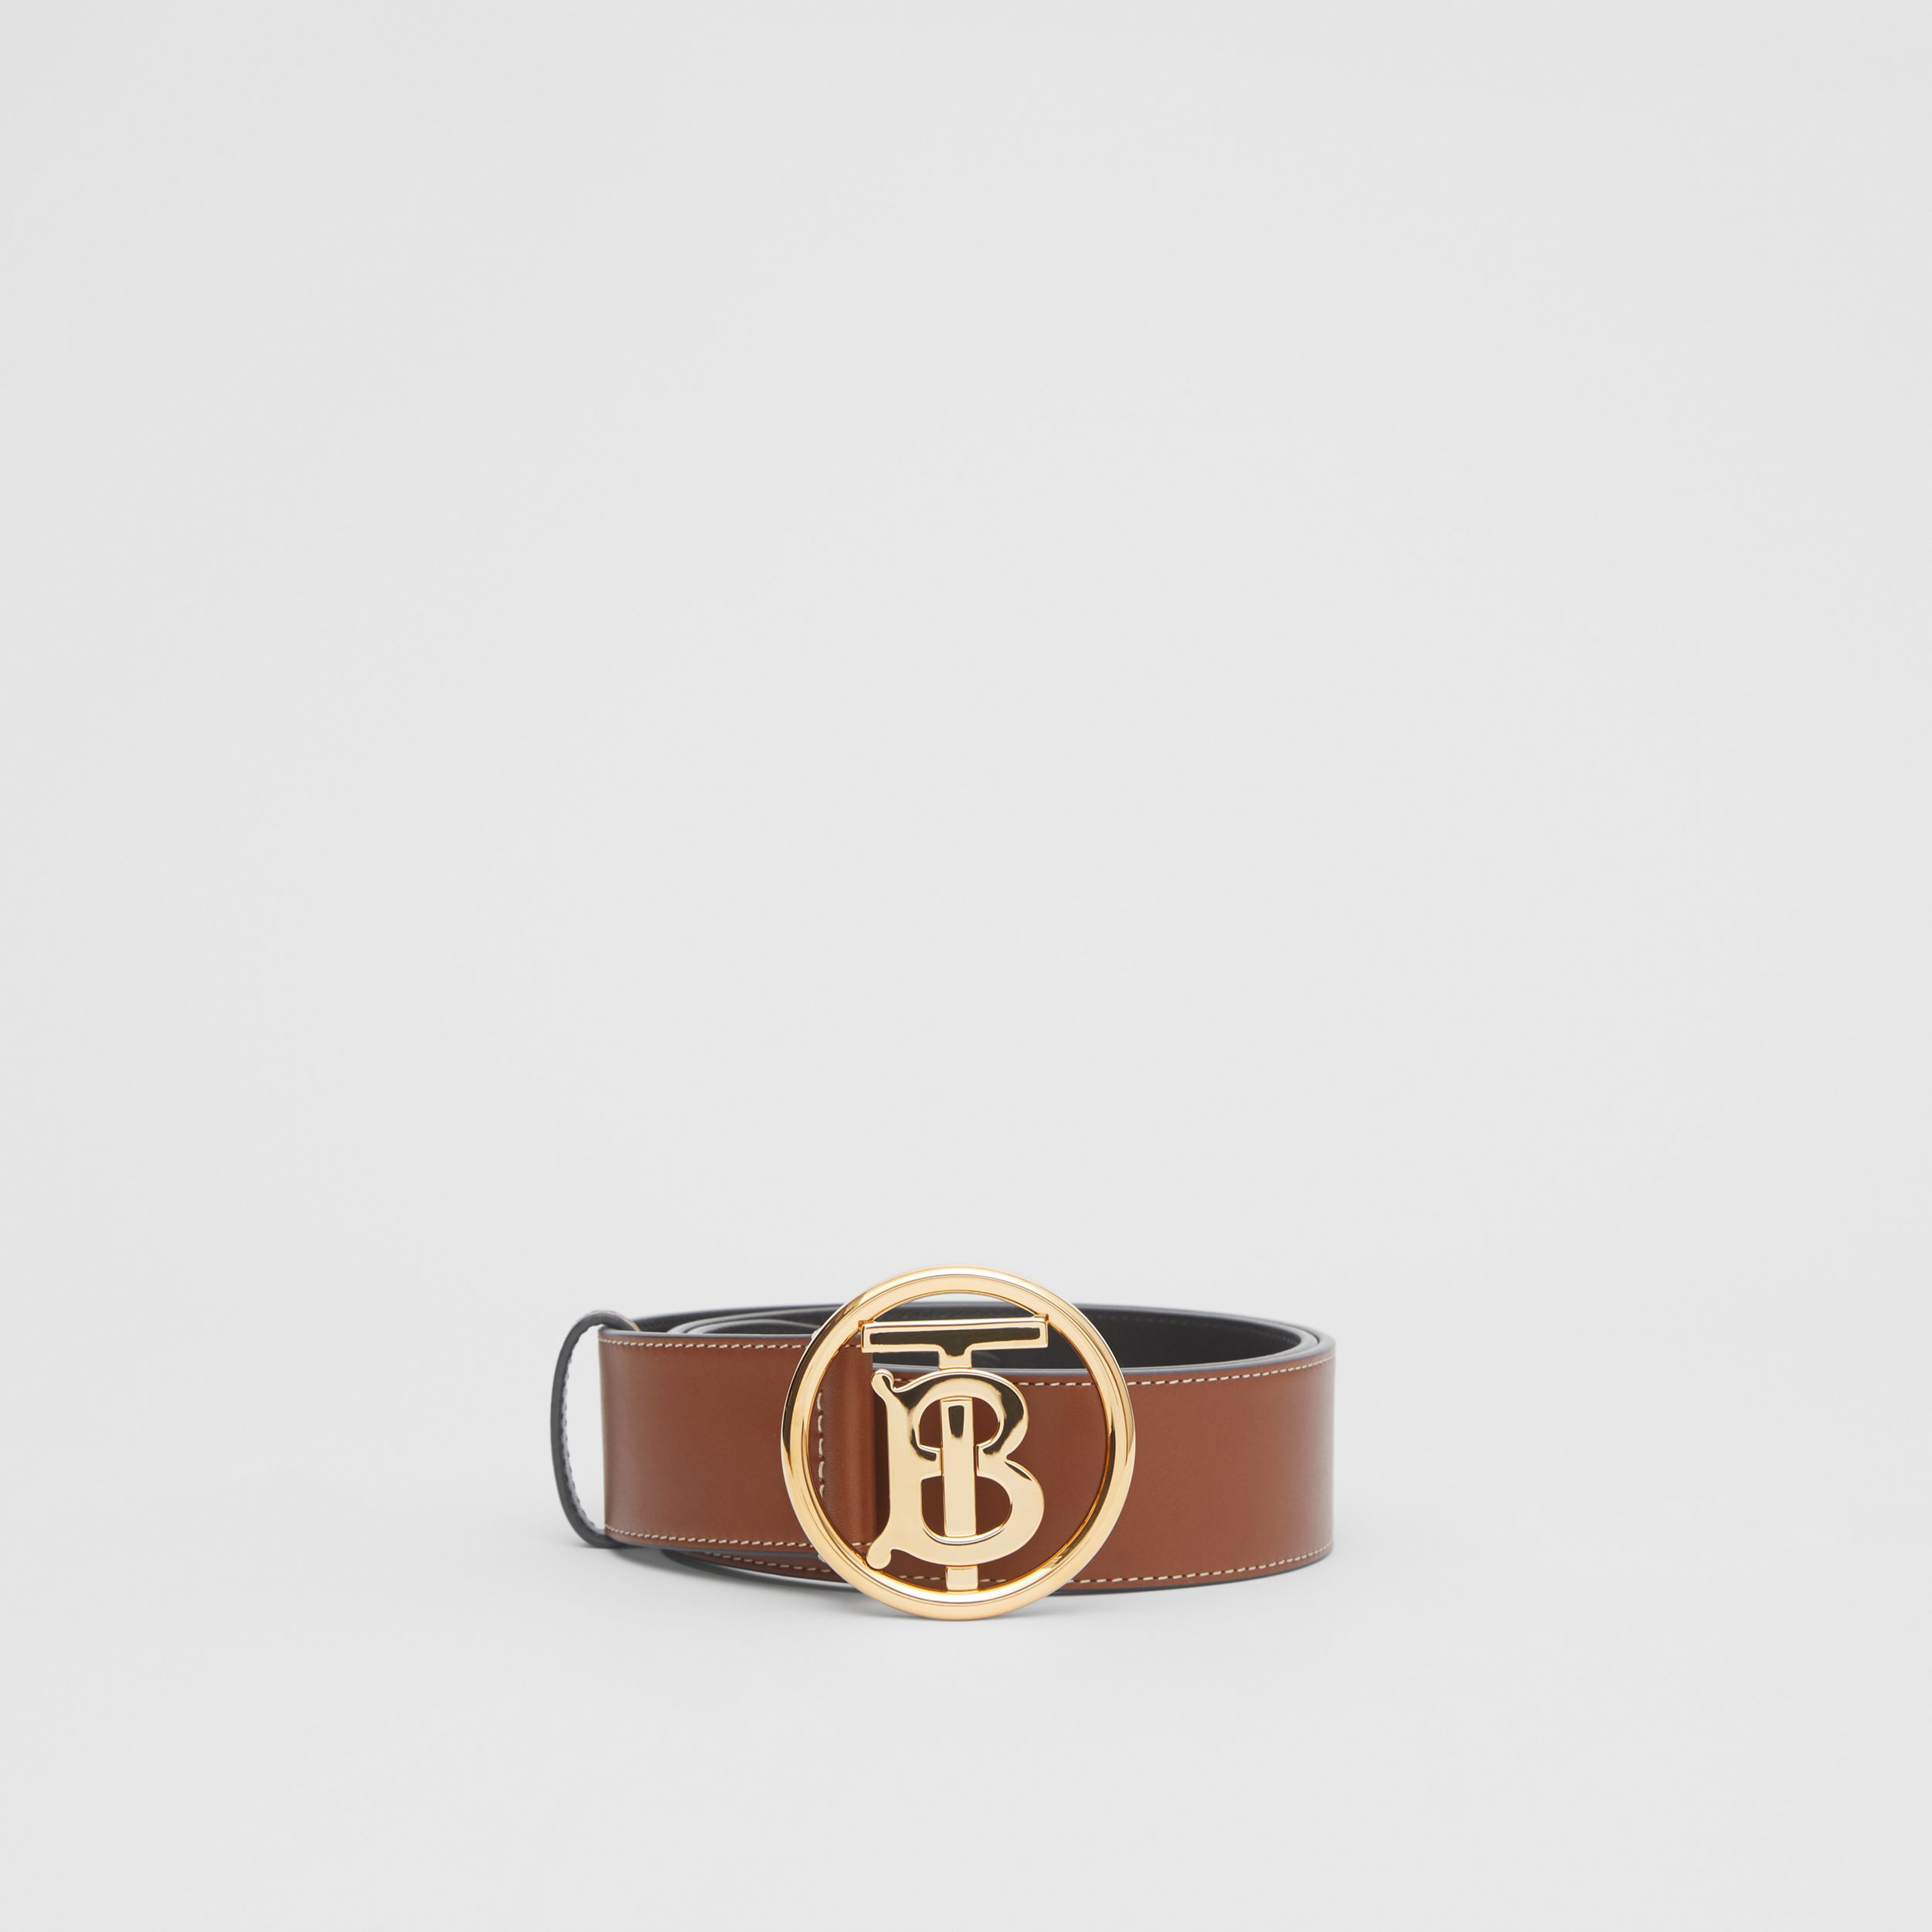 Monogram Motif Topstitched Leather Belt in Tan - Men | Burberry - 3